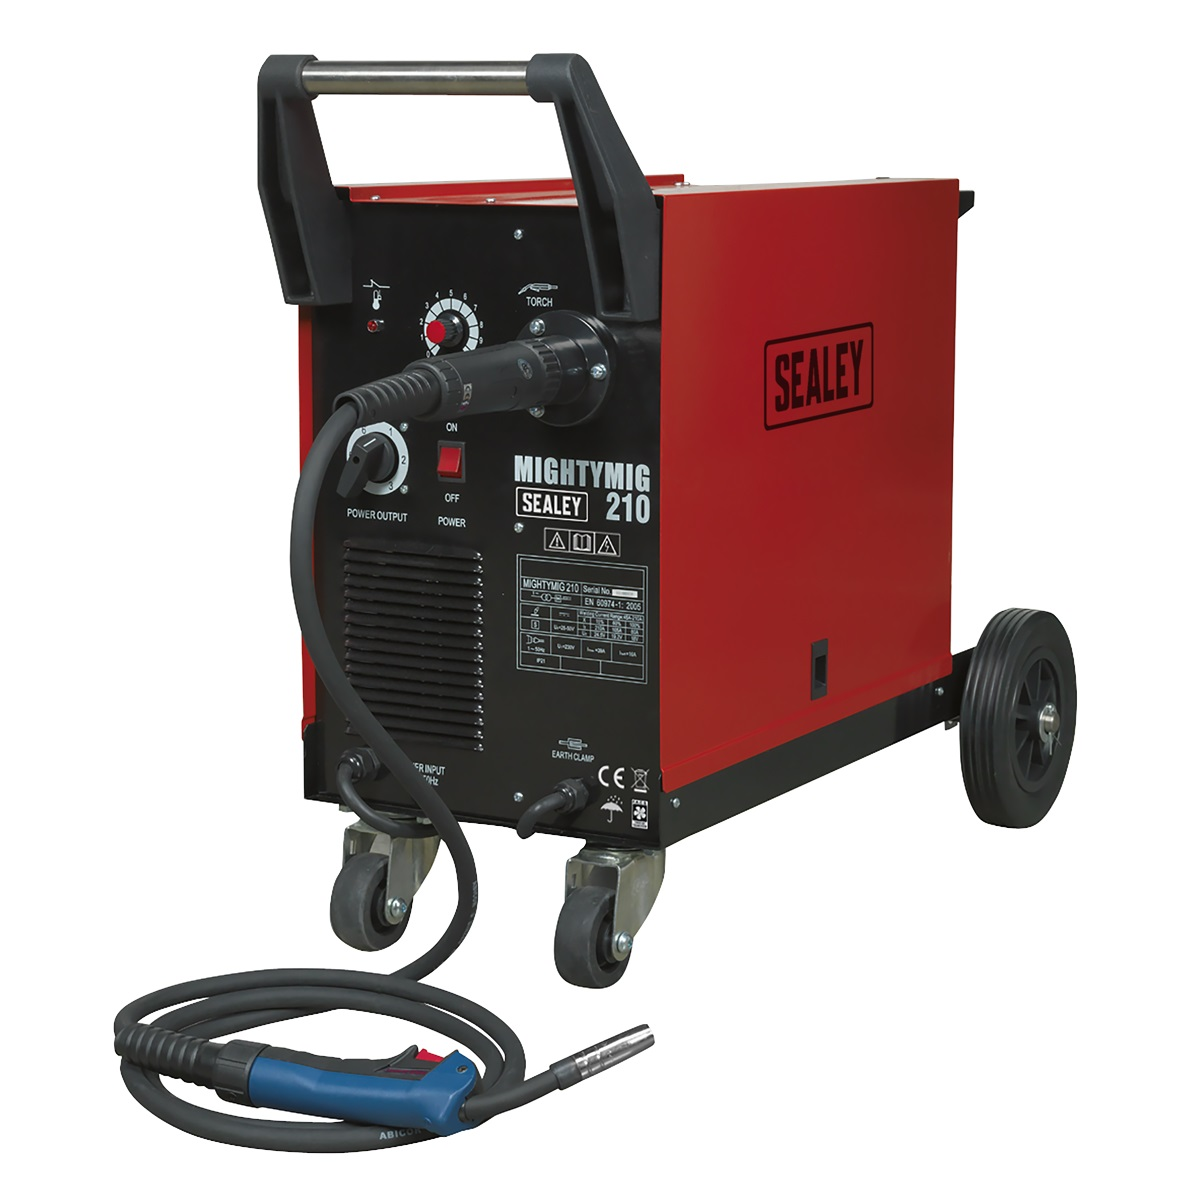 SEALEY Professional Mighty MIG Welder 210Amp MIGHTYMIG210   Ultimate performance at an extremely competitive price   toolforce.ie